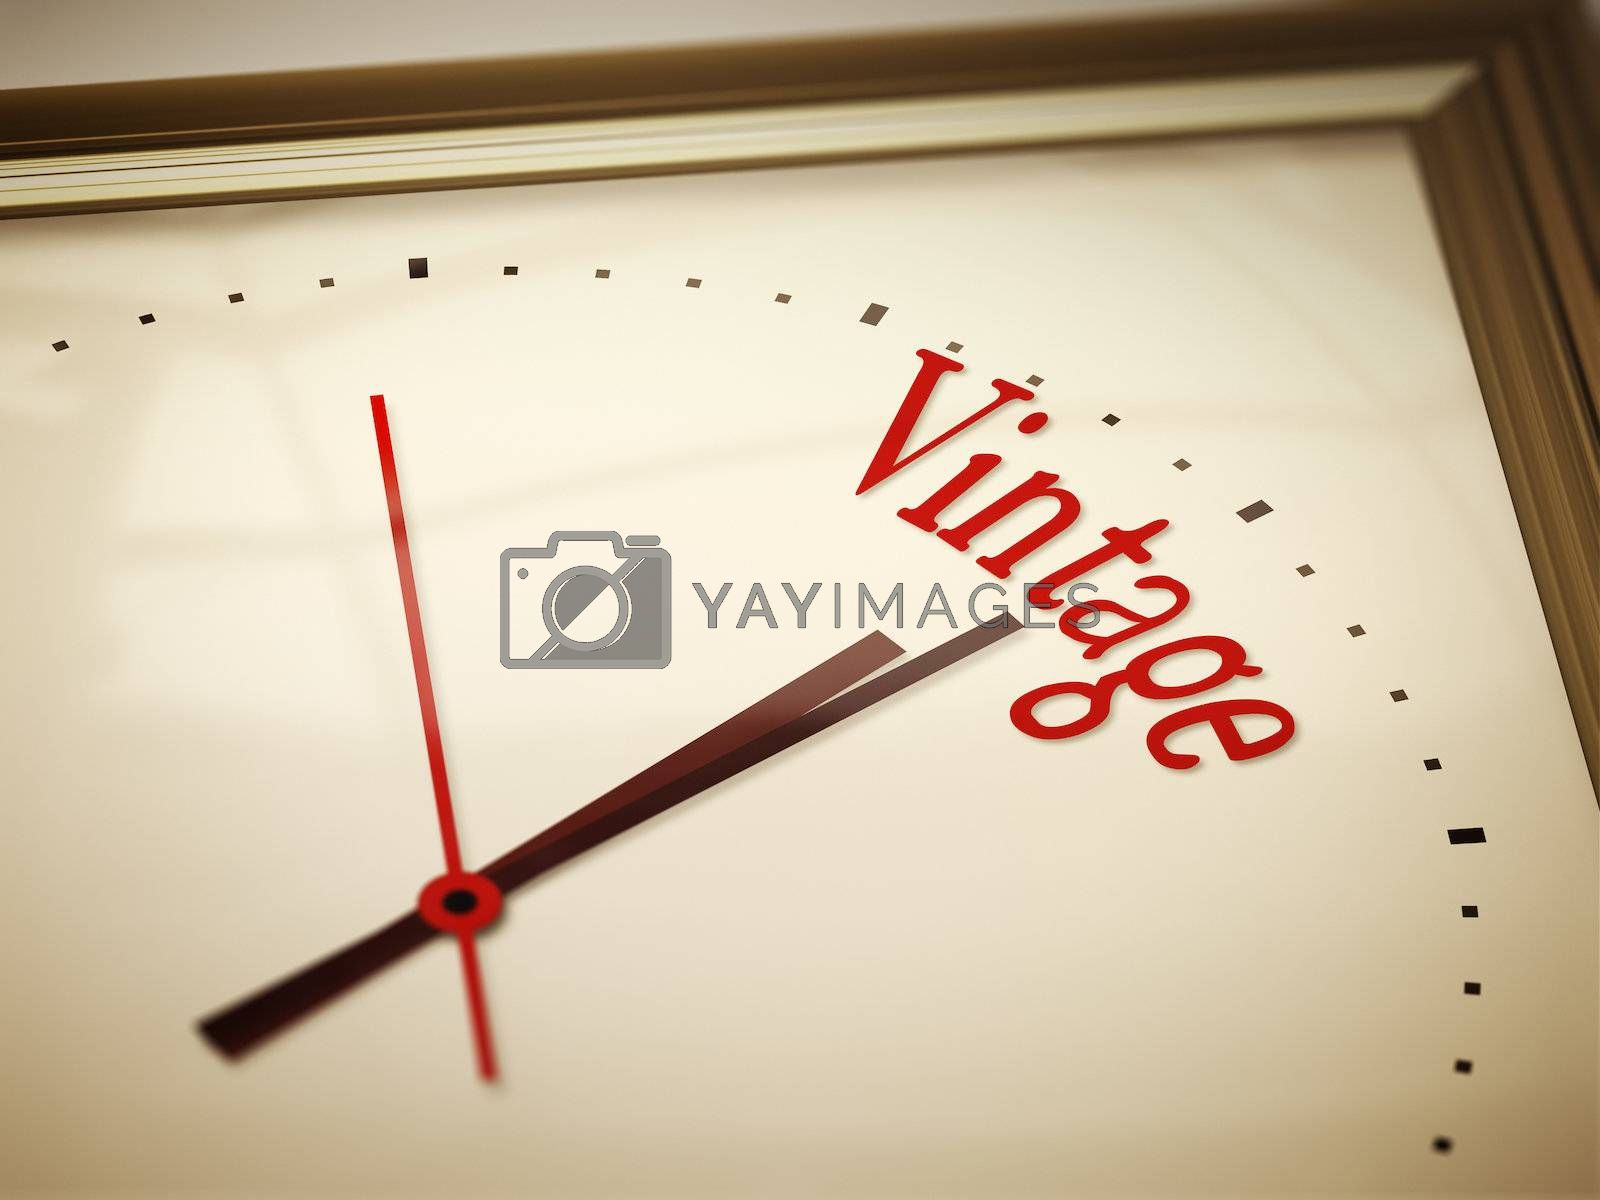 An image of a nice clock with vintage